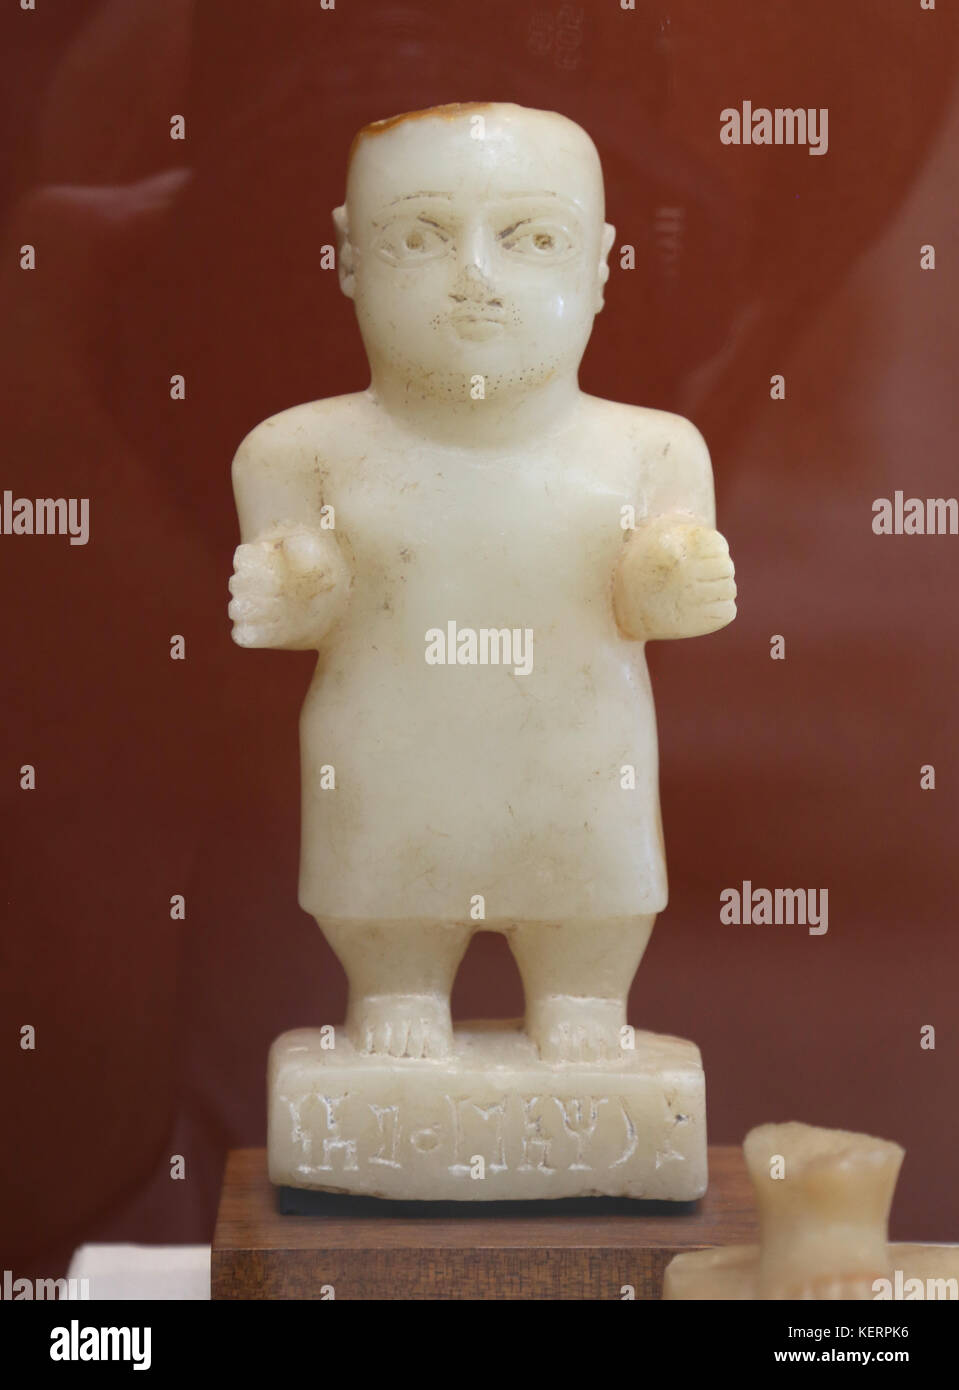 Ancient South Arabia 900BC-600 AD (now Yemen). Alabaster figure.  Originally placed inside tombs. British Museum. - Stock Image